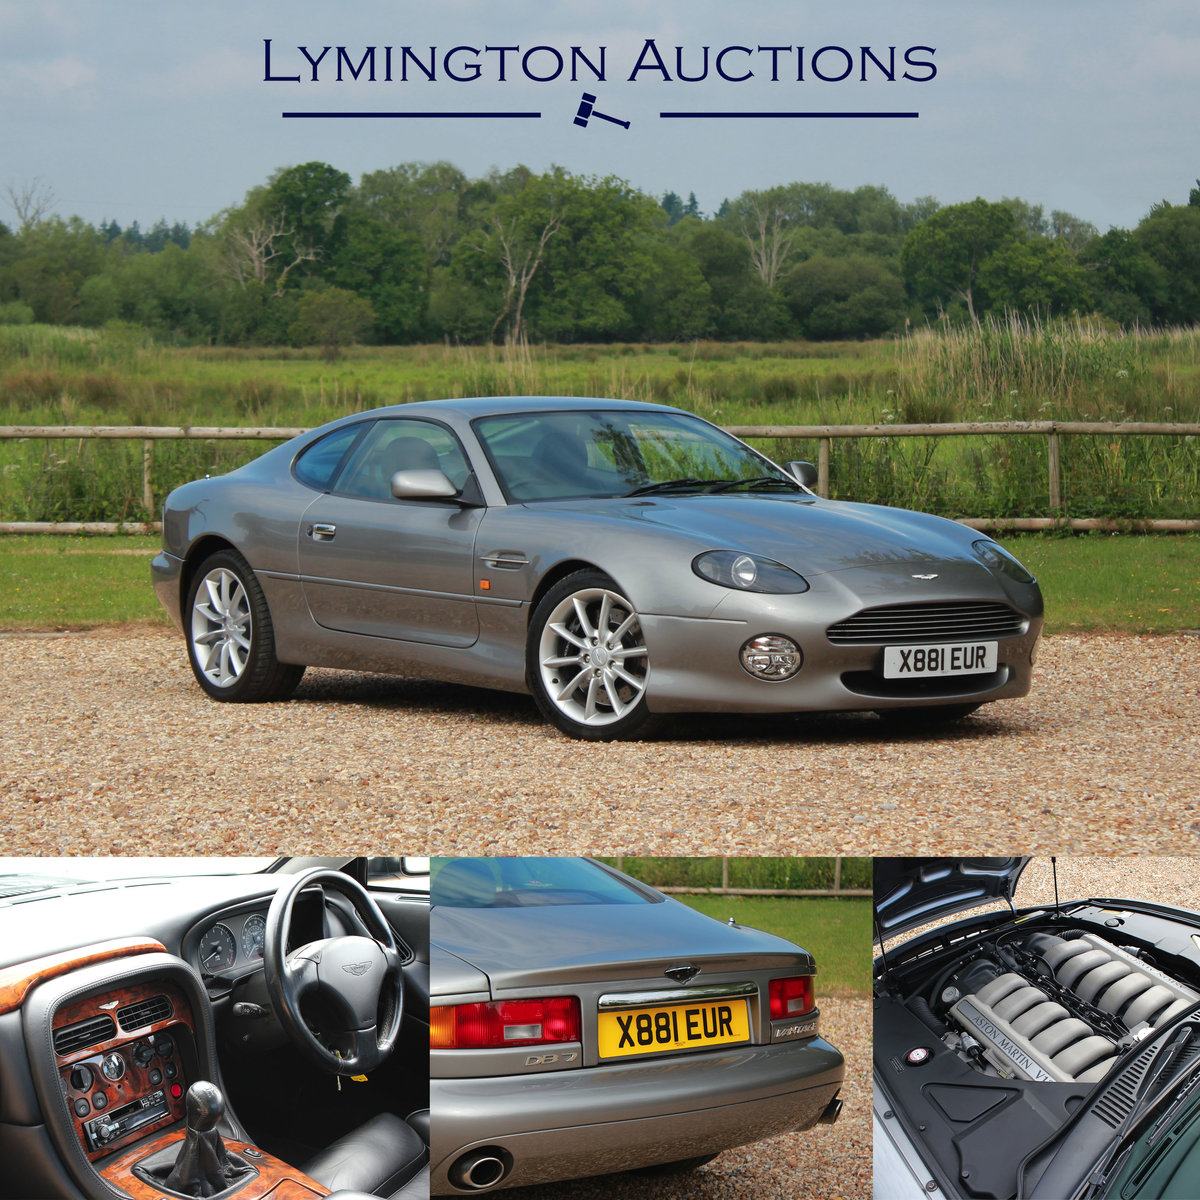 2000 Aston Martin DB7 Vantage Manual V12 Coupe For Sale by Auction (picture 1 of 1)